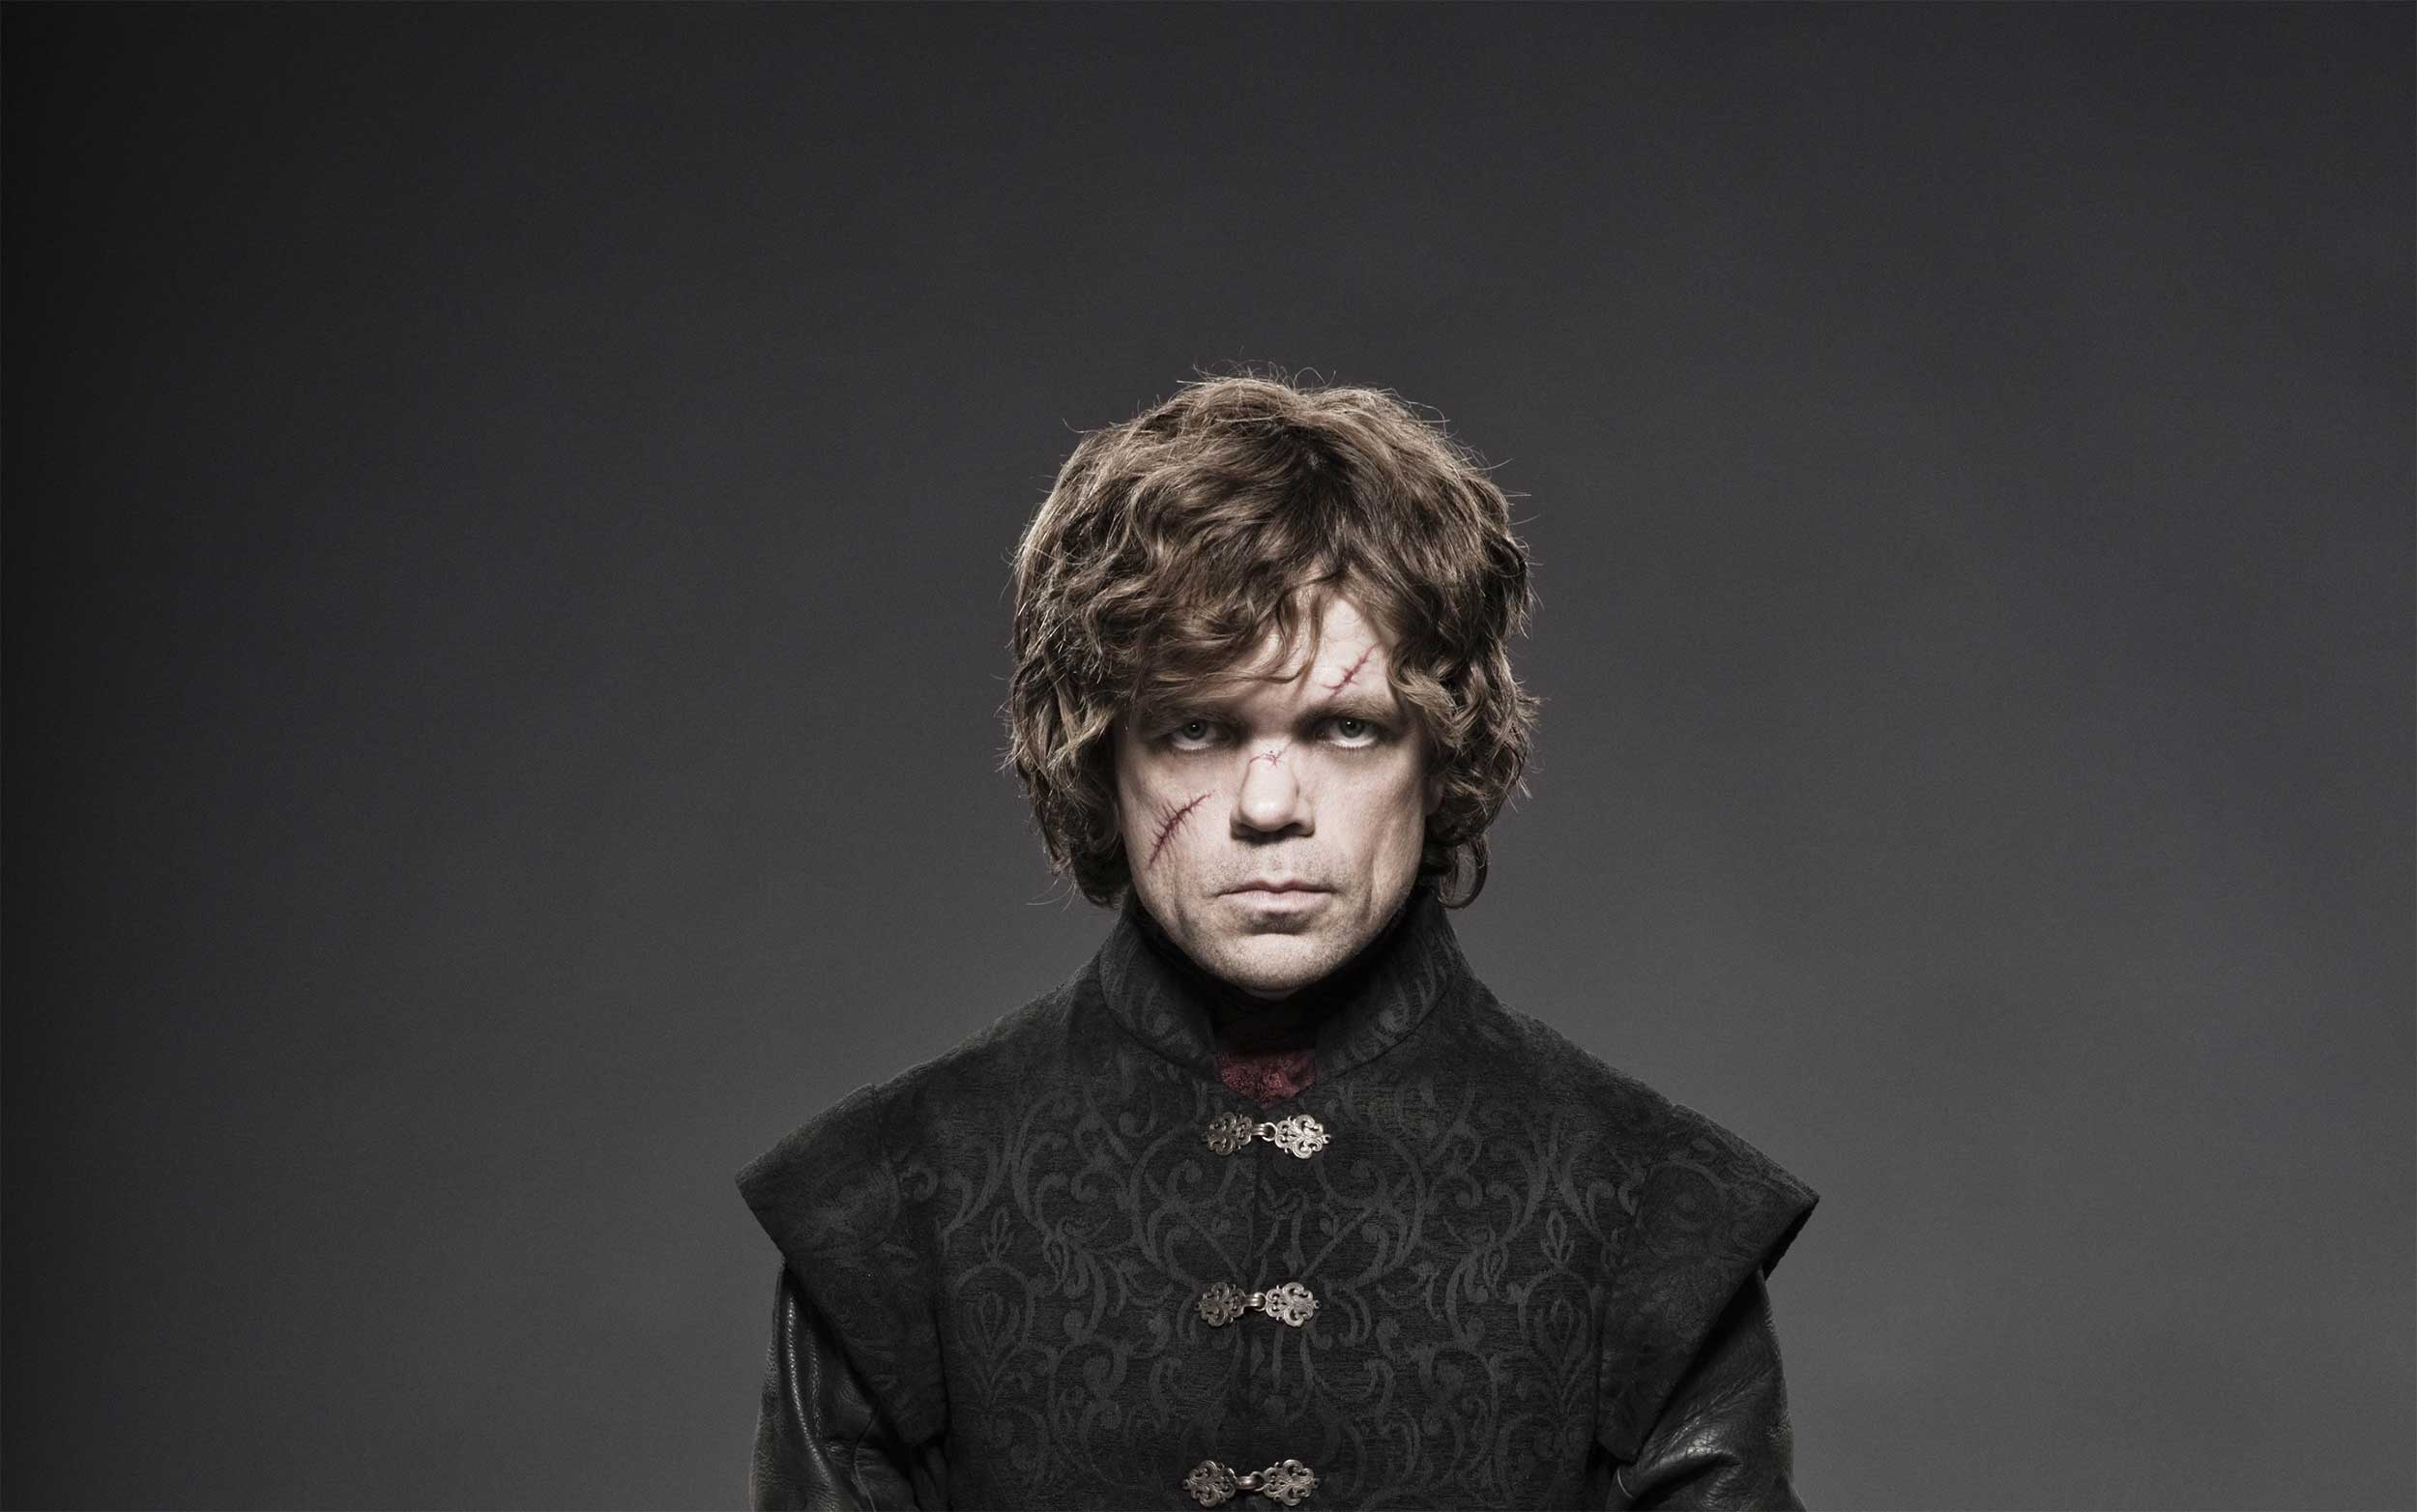 http://hdqwalls.com/wallpapers/tyrion-lannister-game-of-thrones-new.jpg